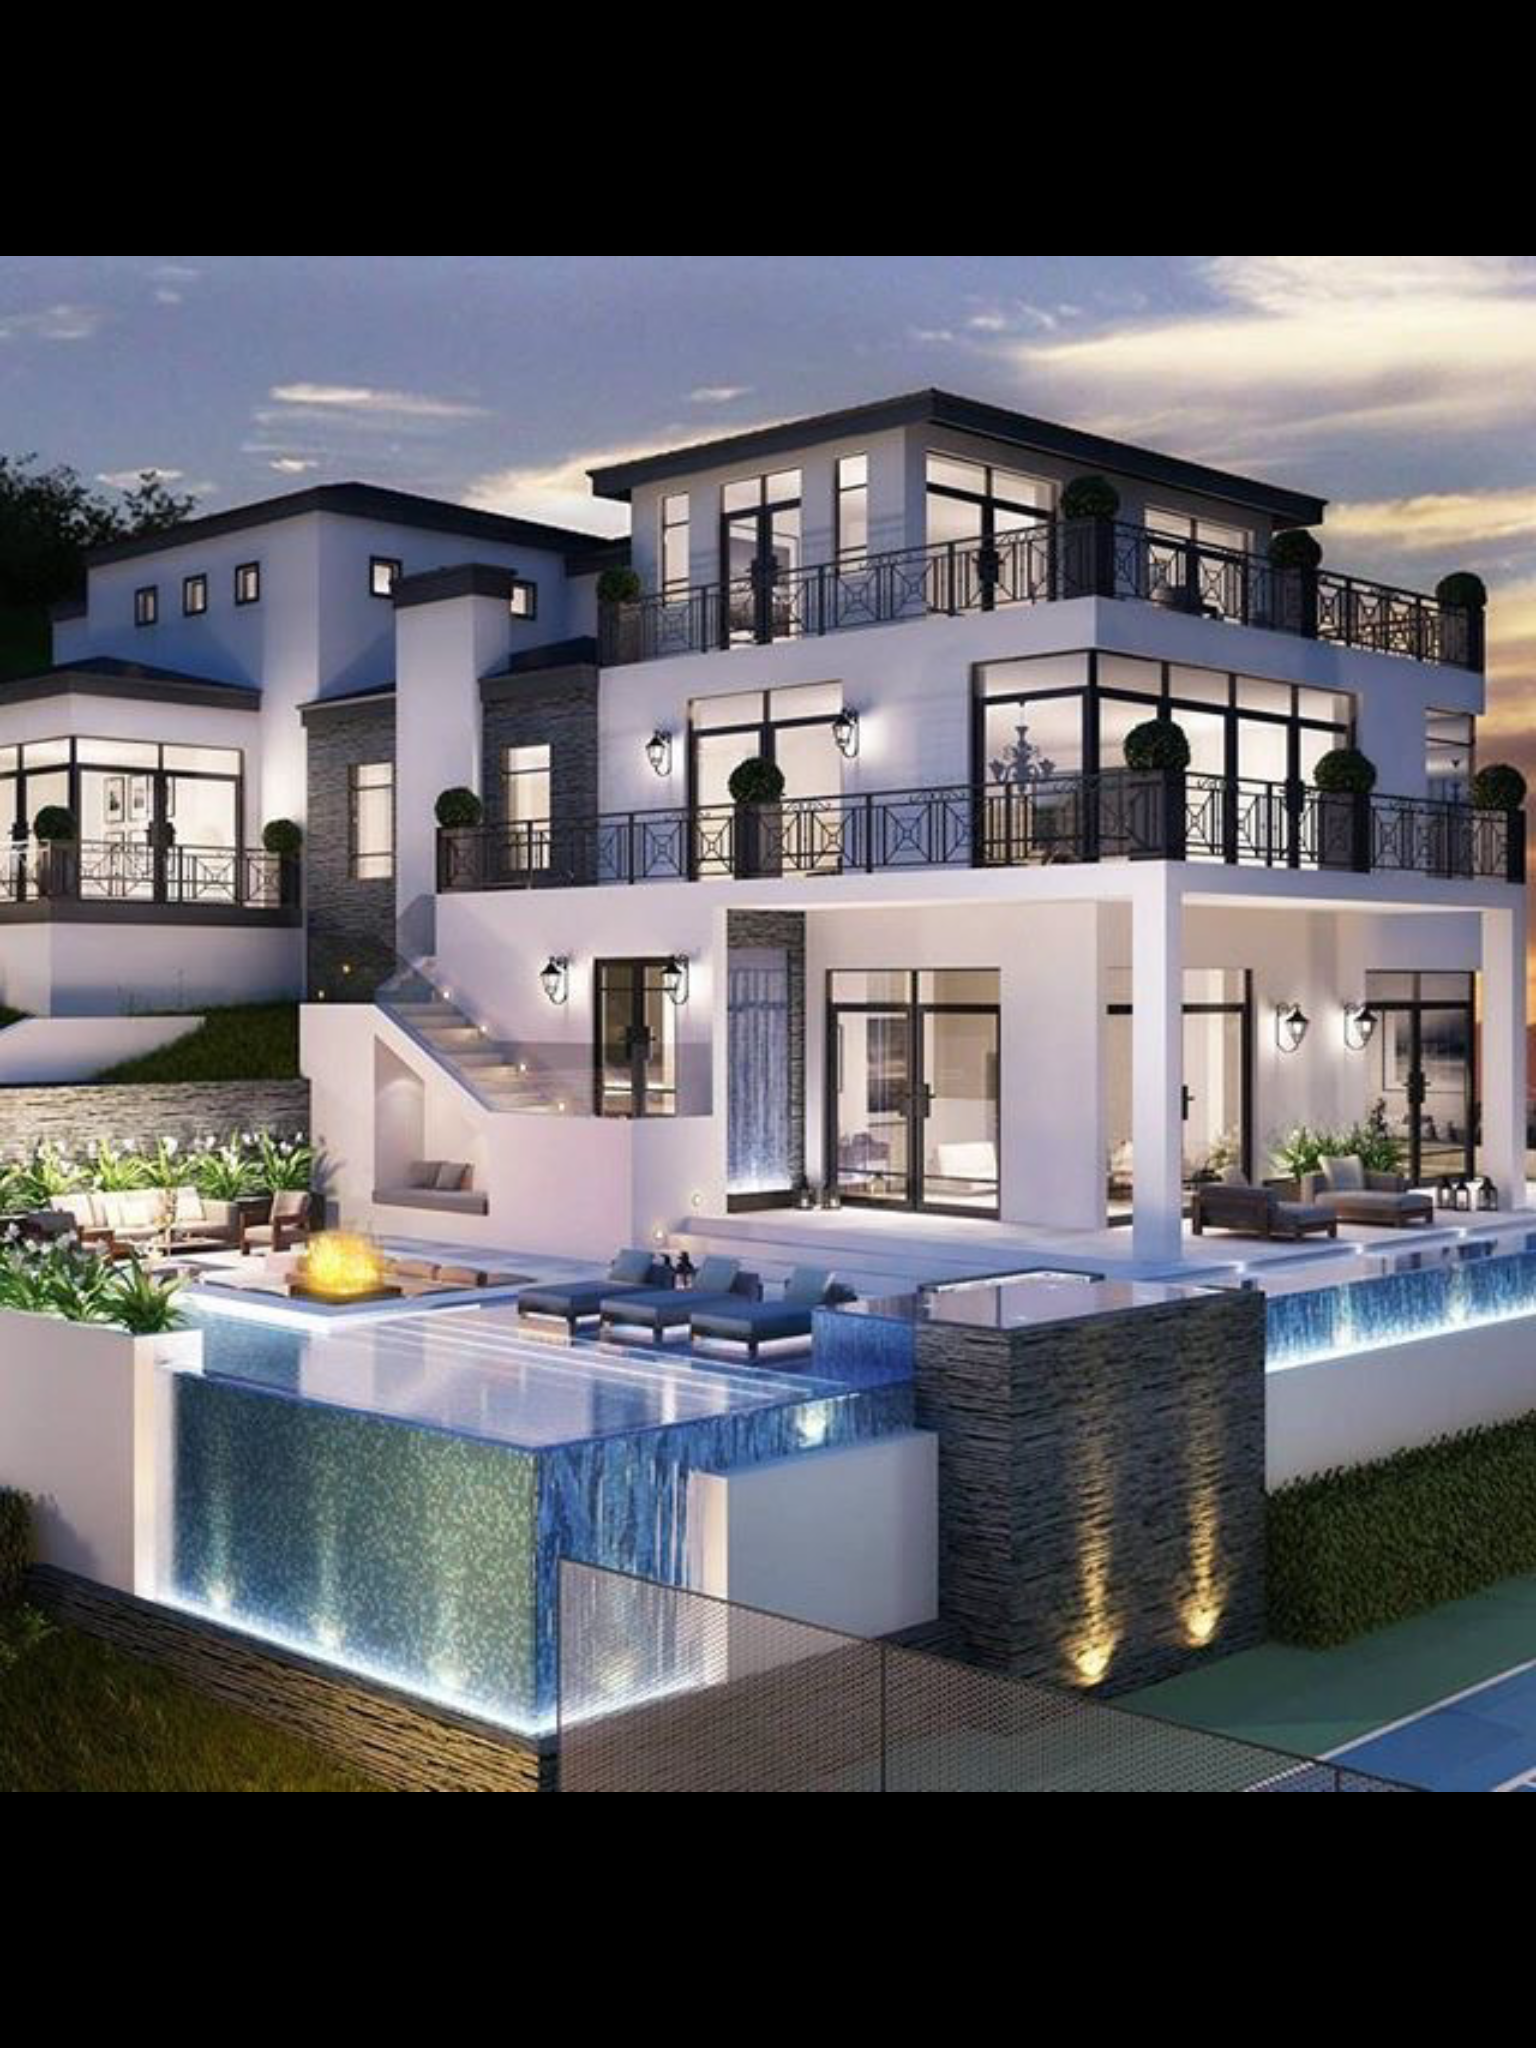 Dream mansion mansion houses mediterranean homes house goals my dream home